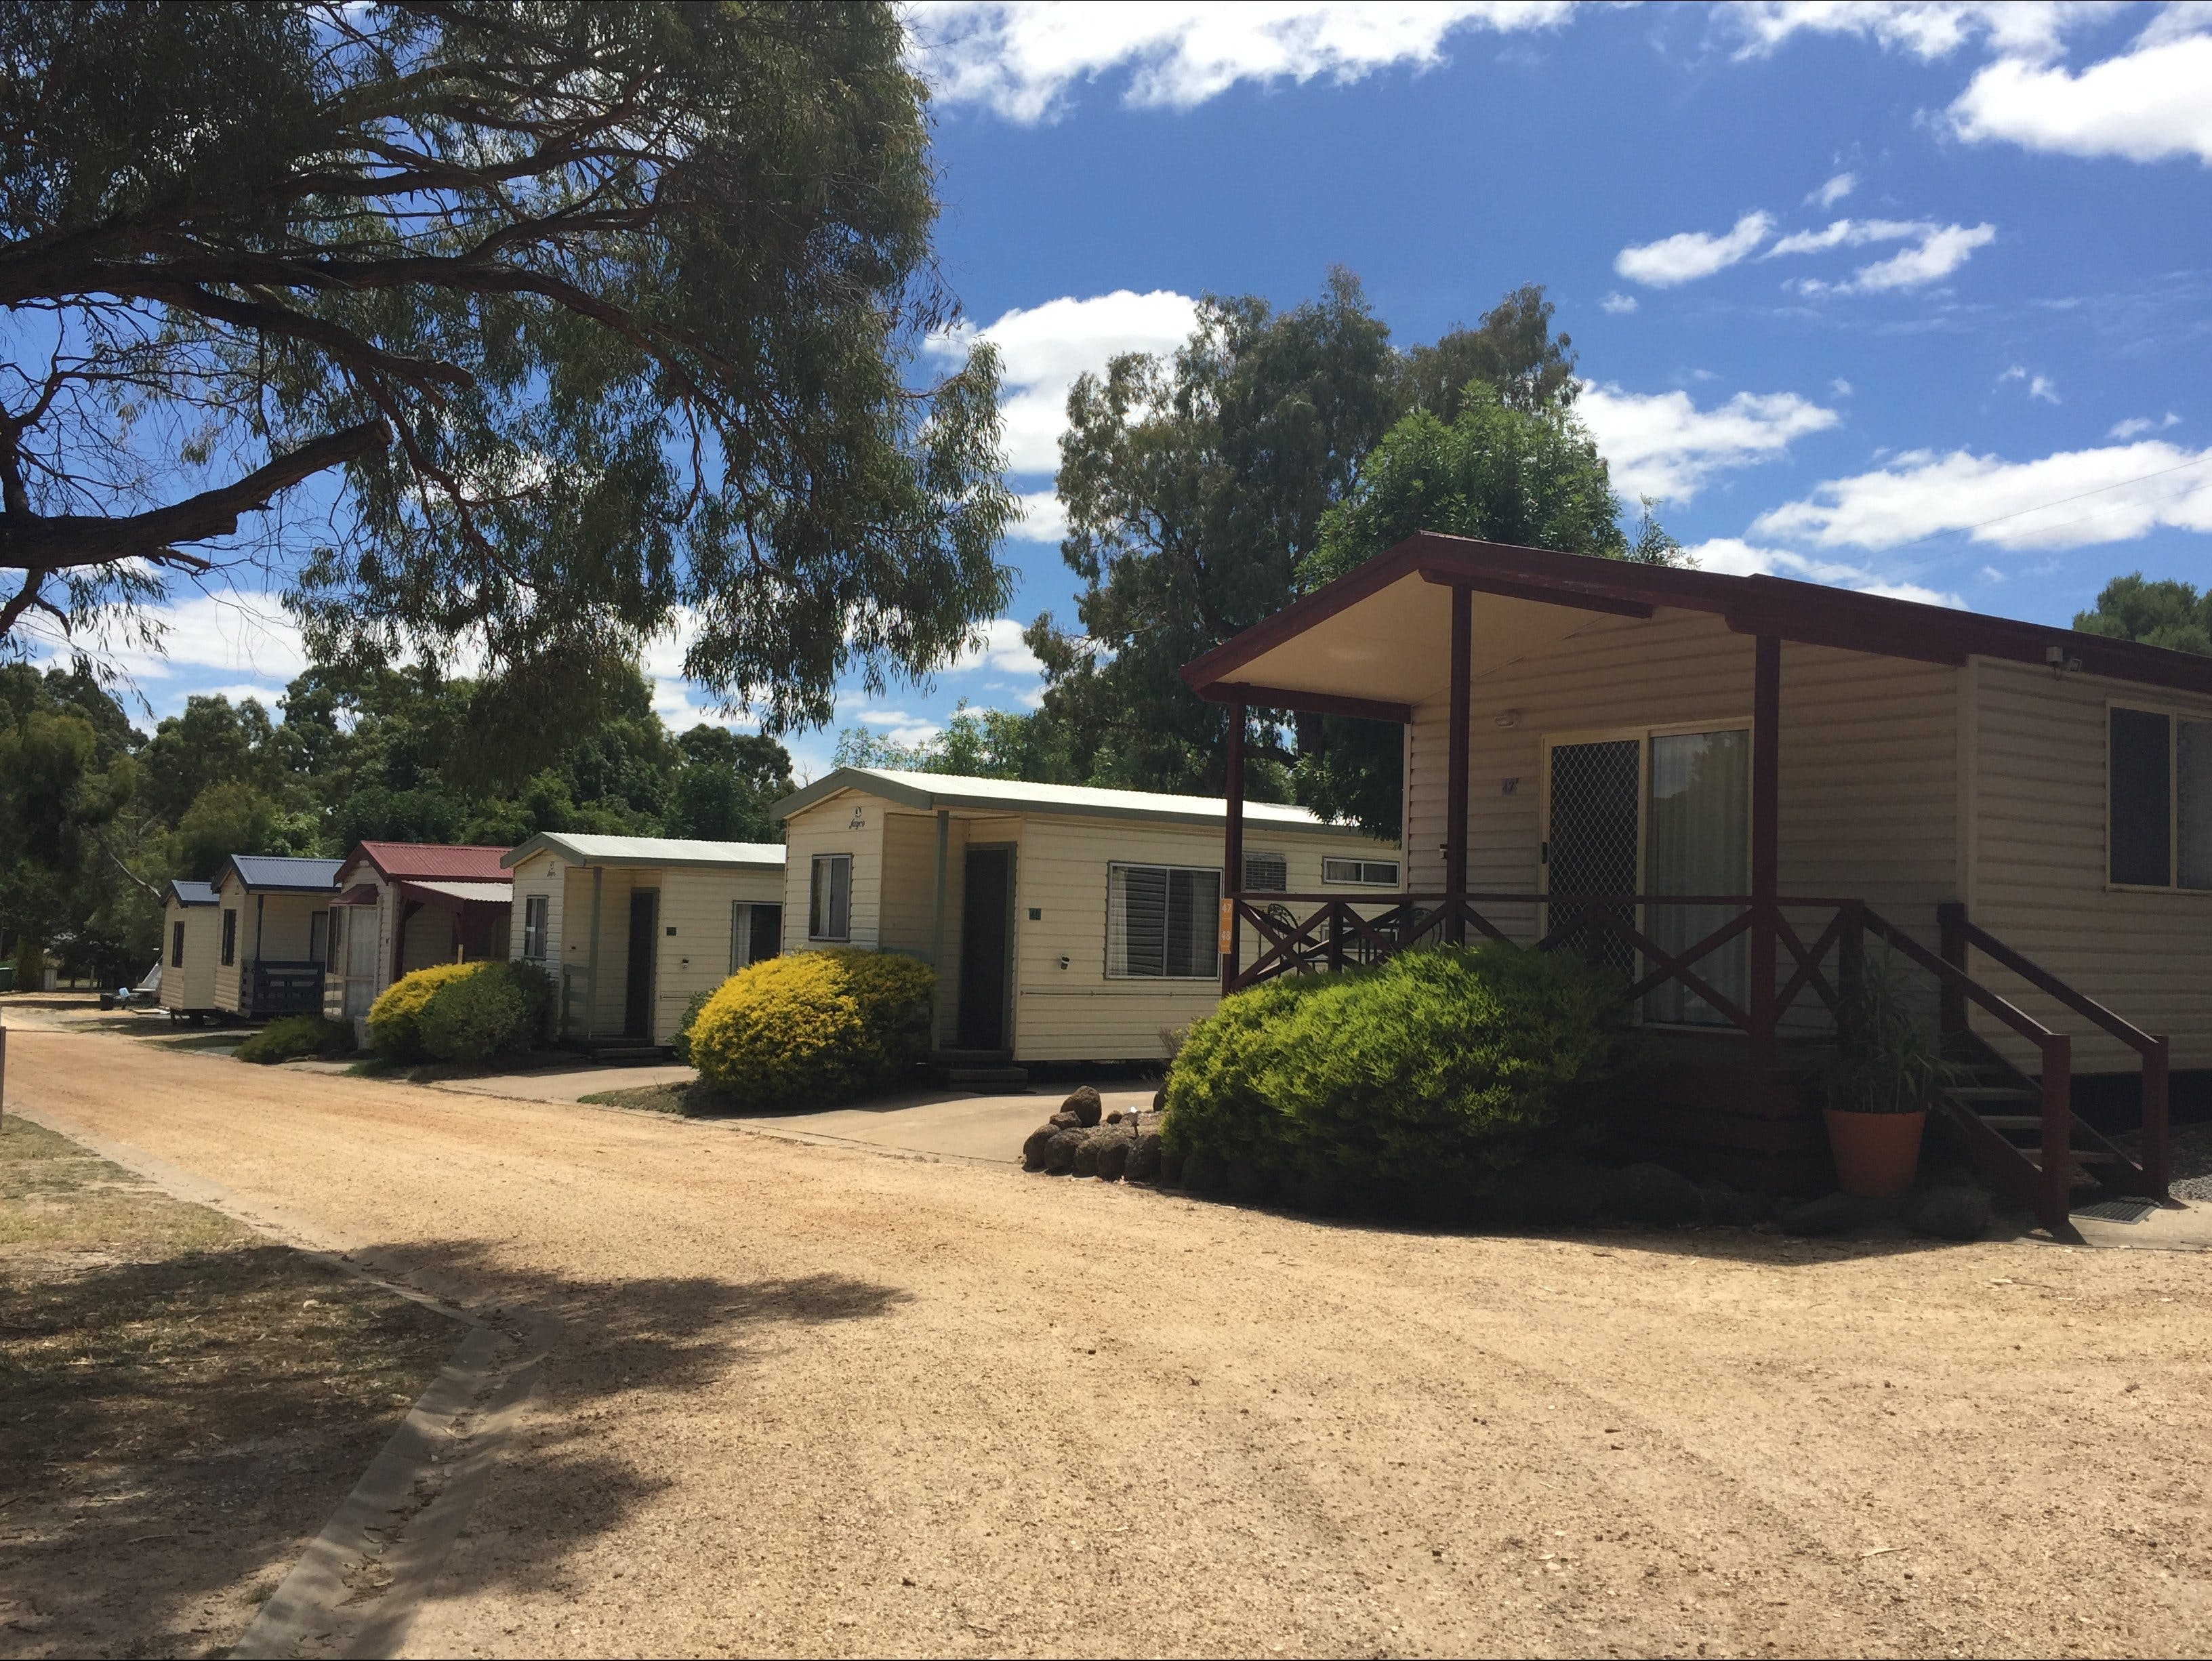 Acacia Caravan Park and Holiday Units - Phillip Island Accommodation